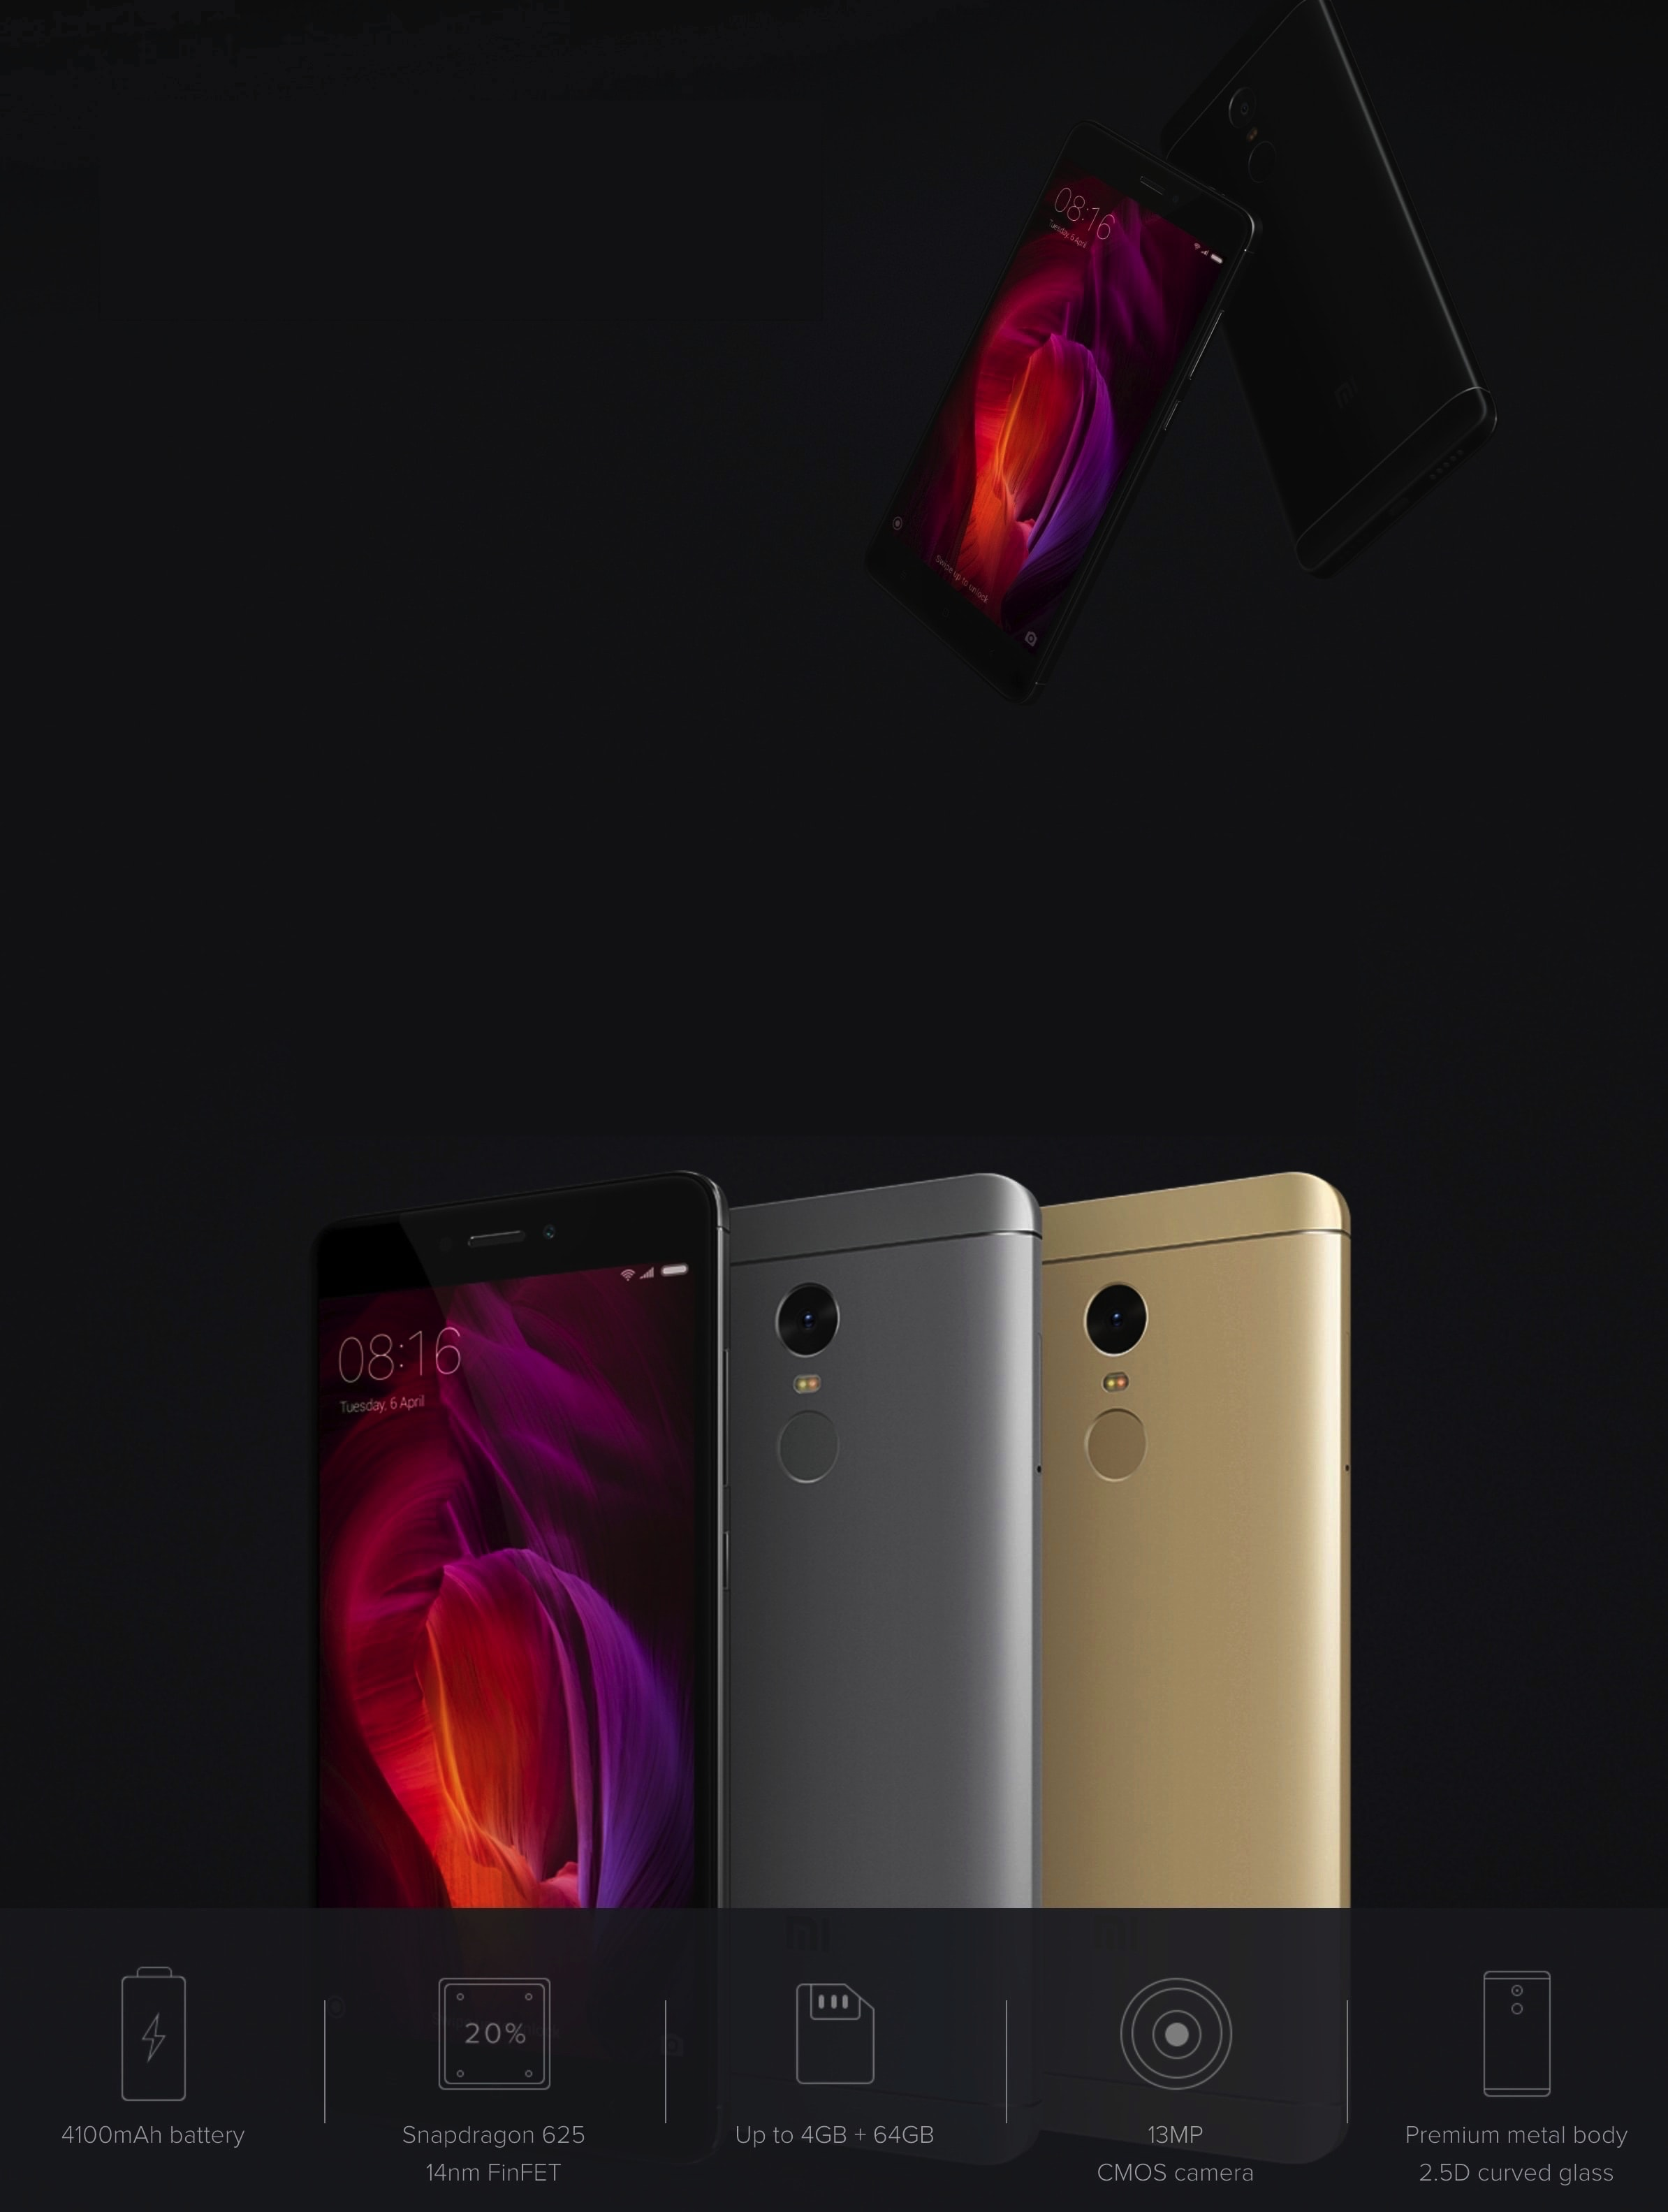 redmi note 4 price singapore